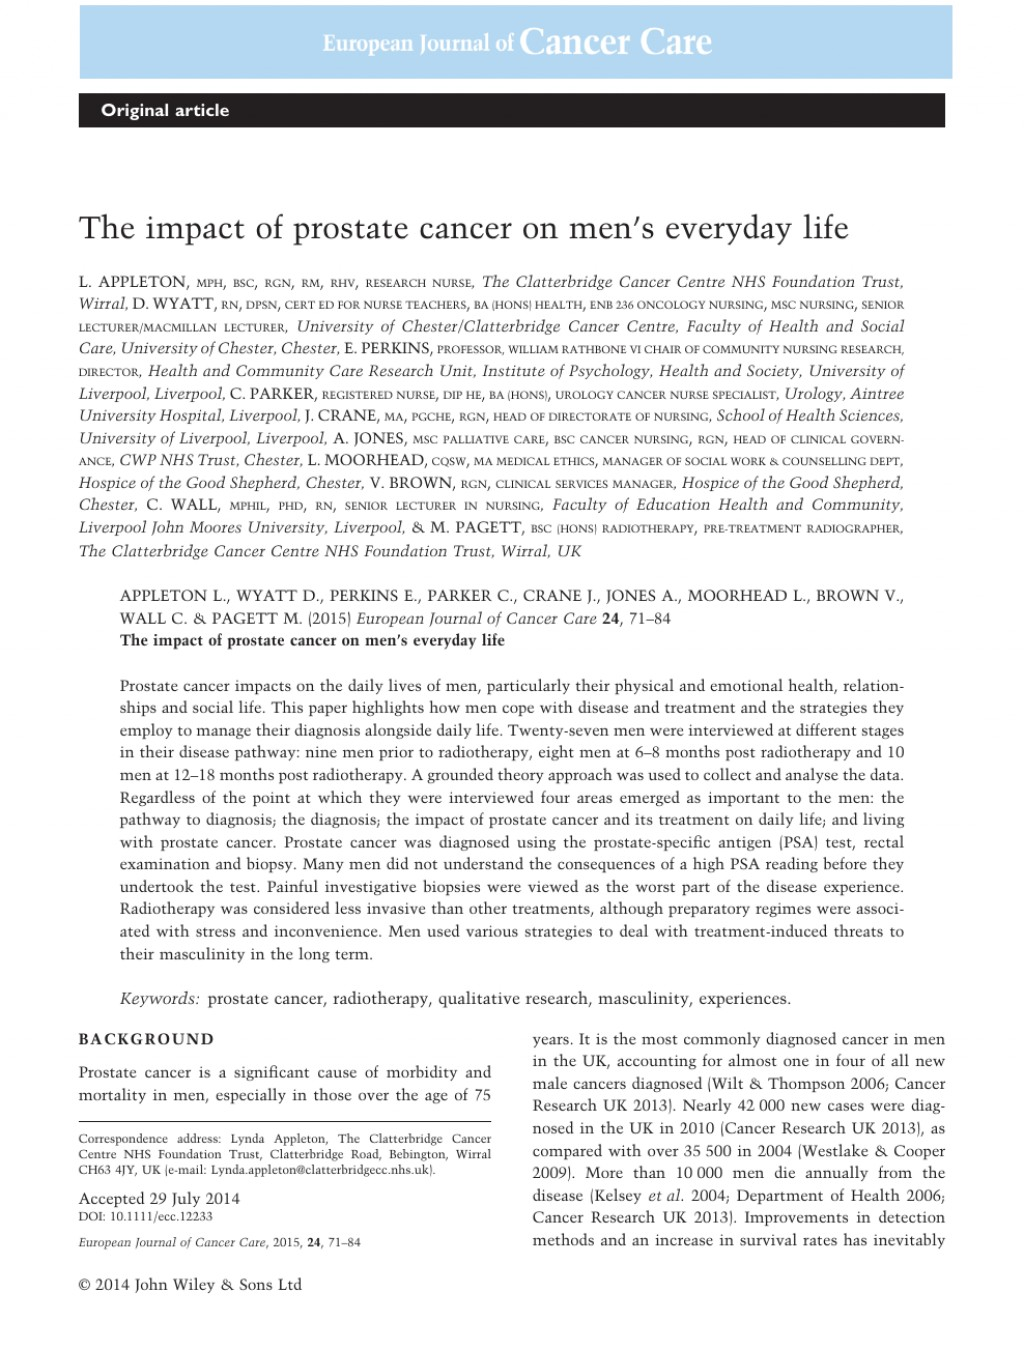 005 Cancer Research Paper Marvelous Topics Breast Ideas Ovarian Large